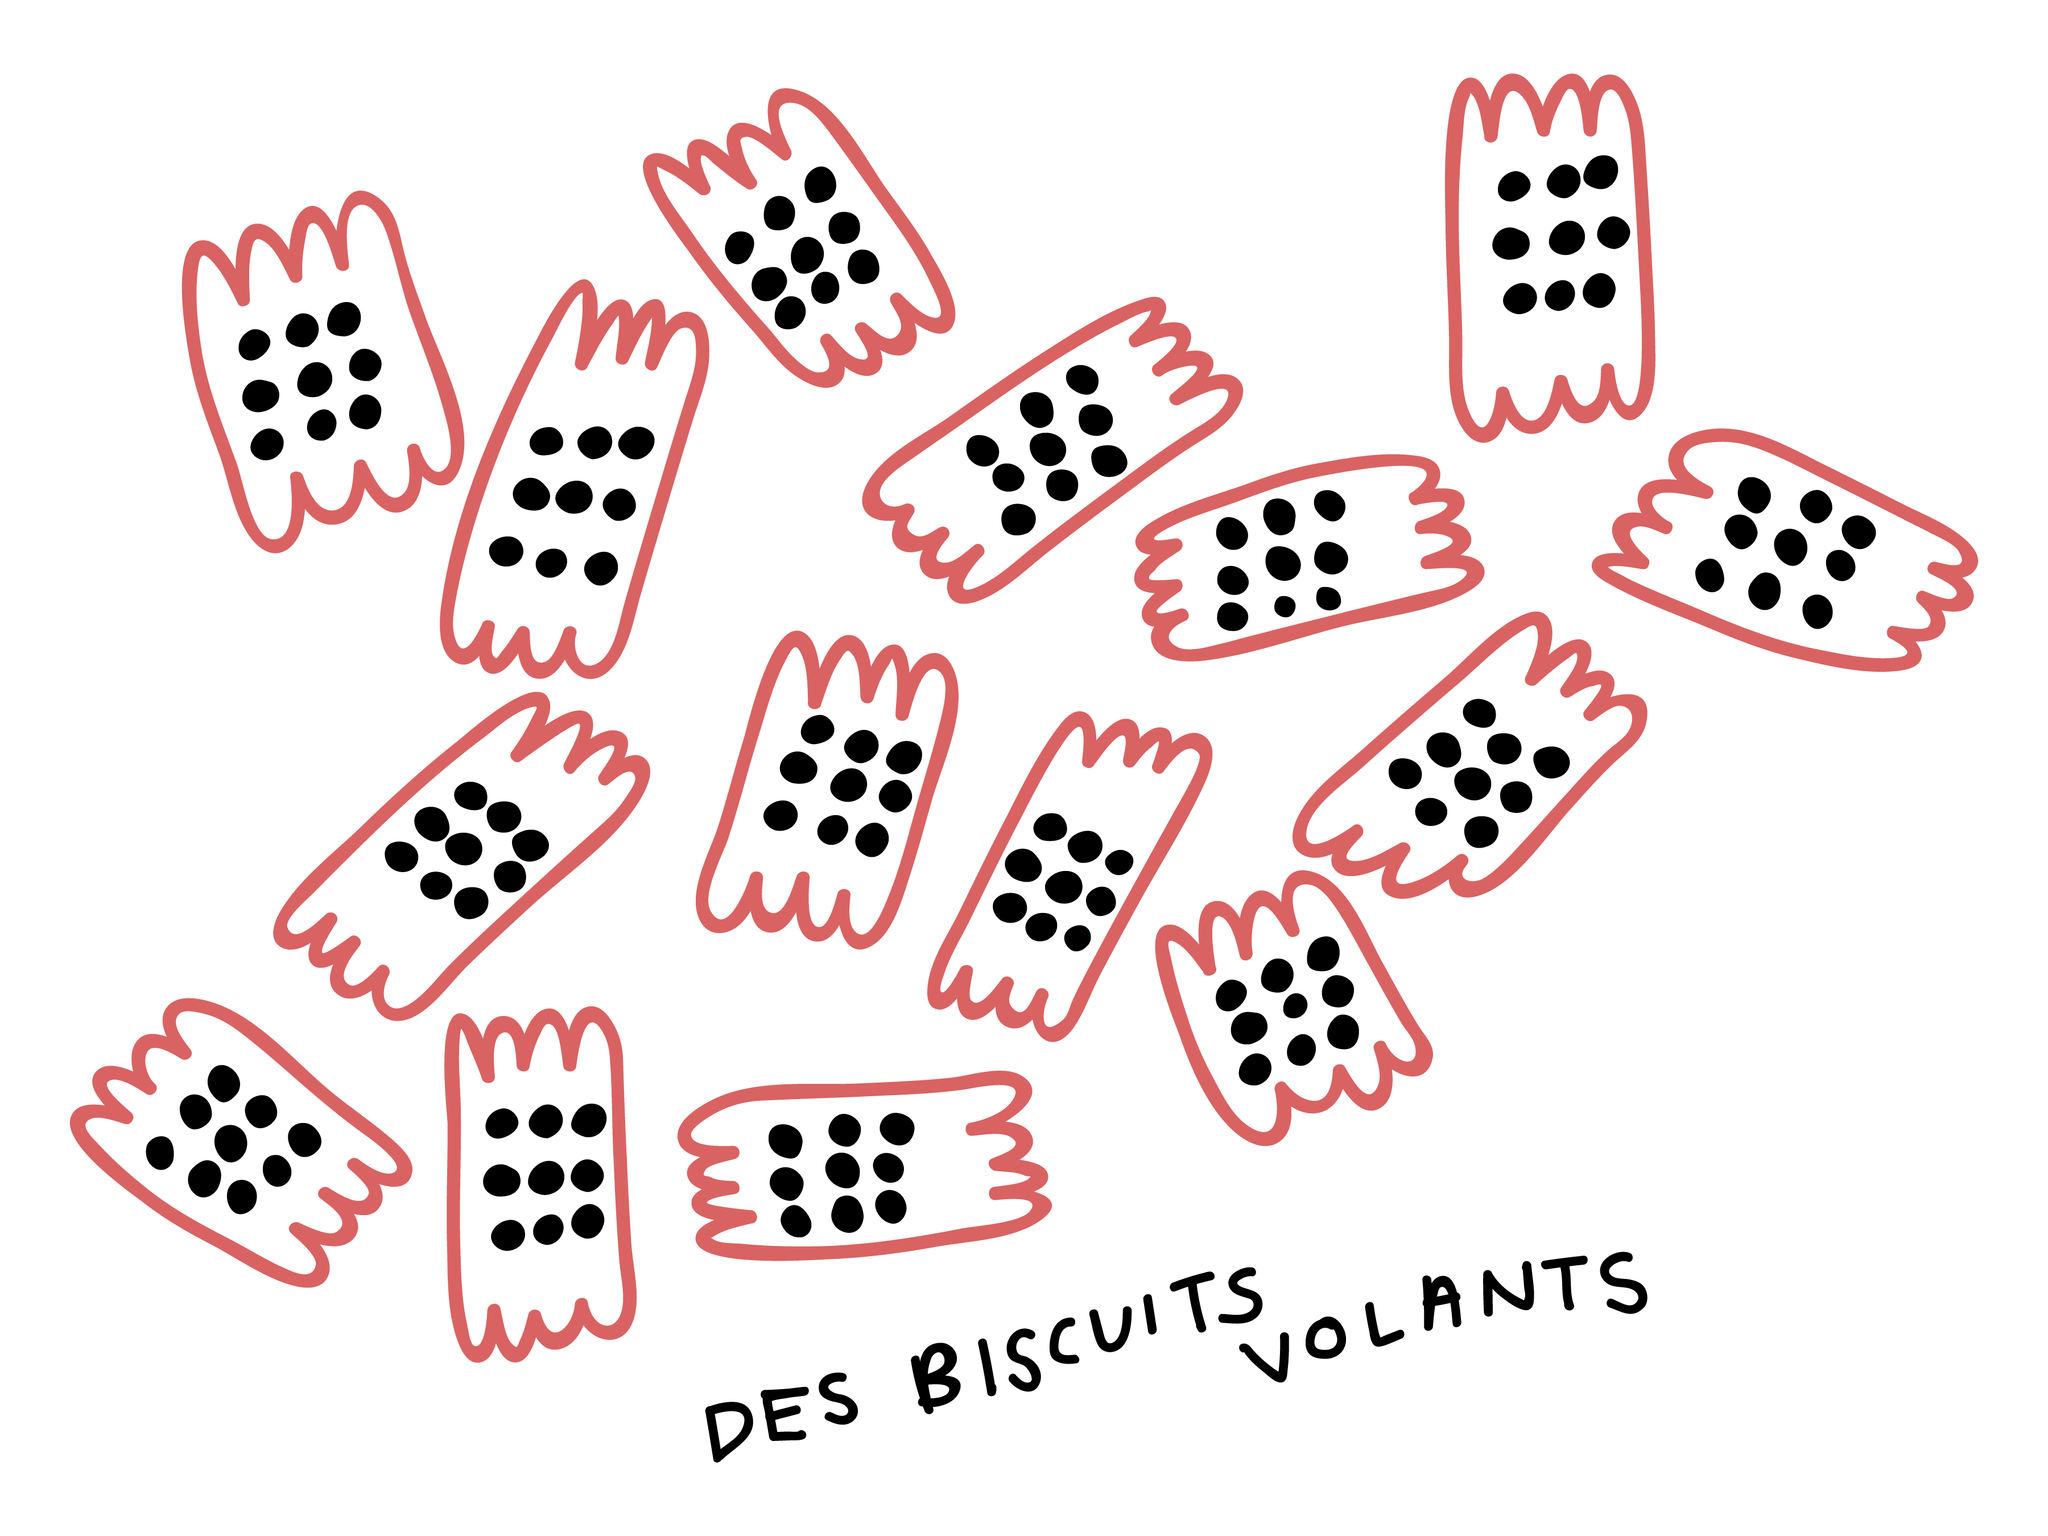 Des biscuits volants